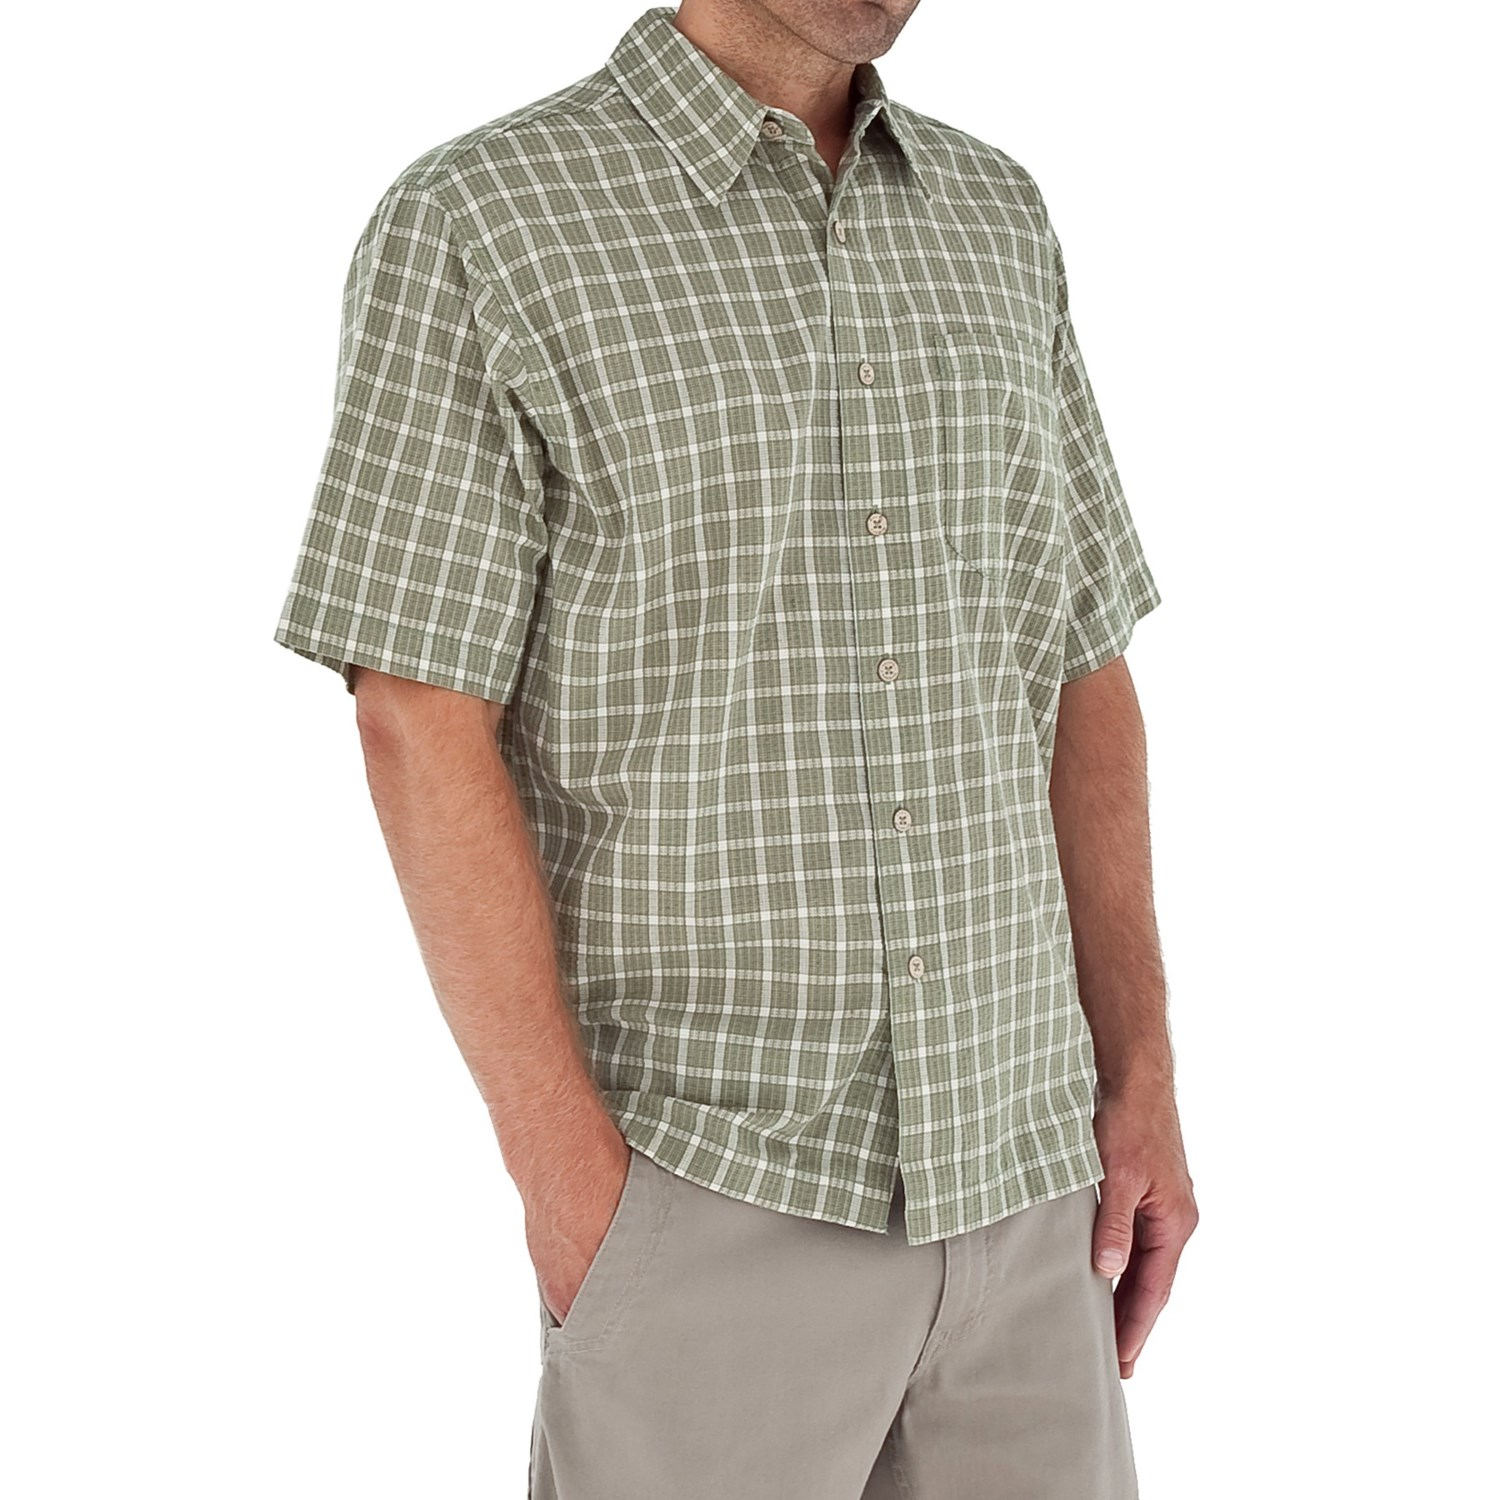 Royal robbins salida seersucker shirt for men 6423t for Mens short sleeve seersucker shirts